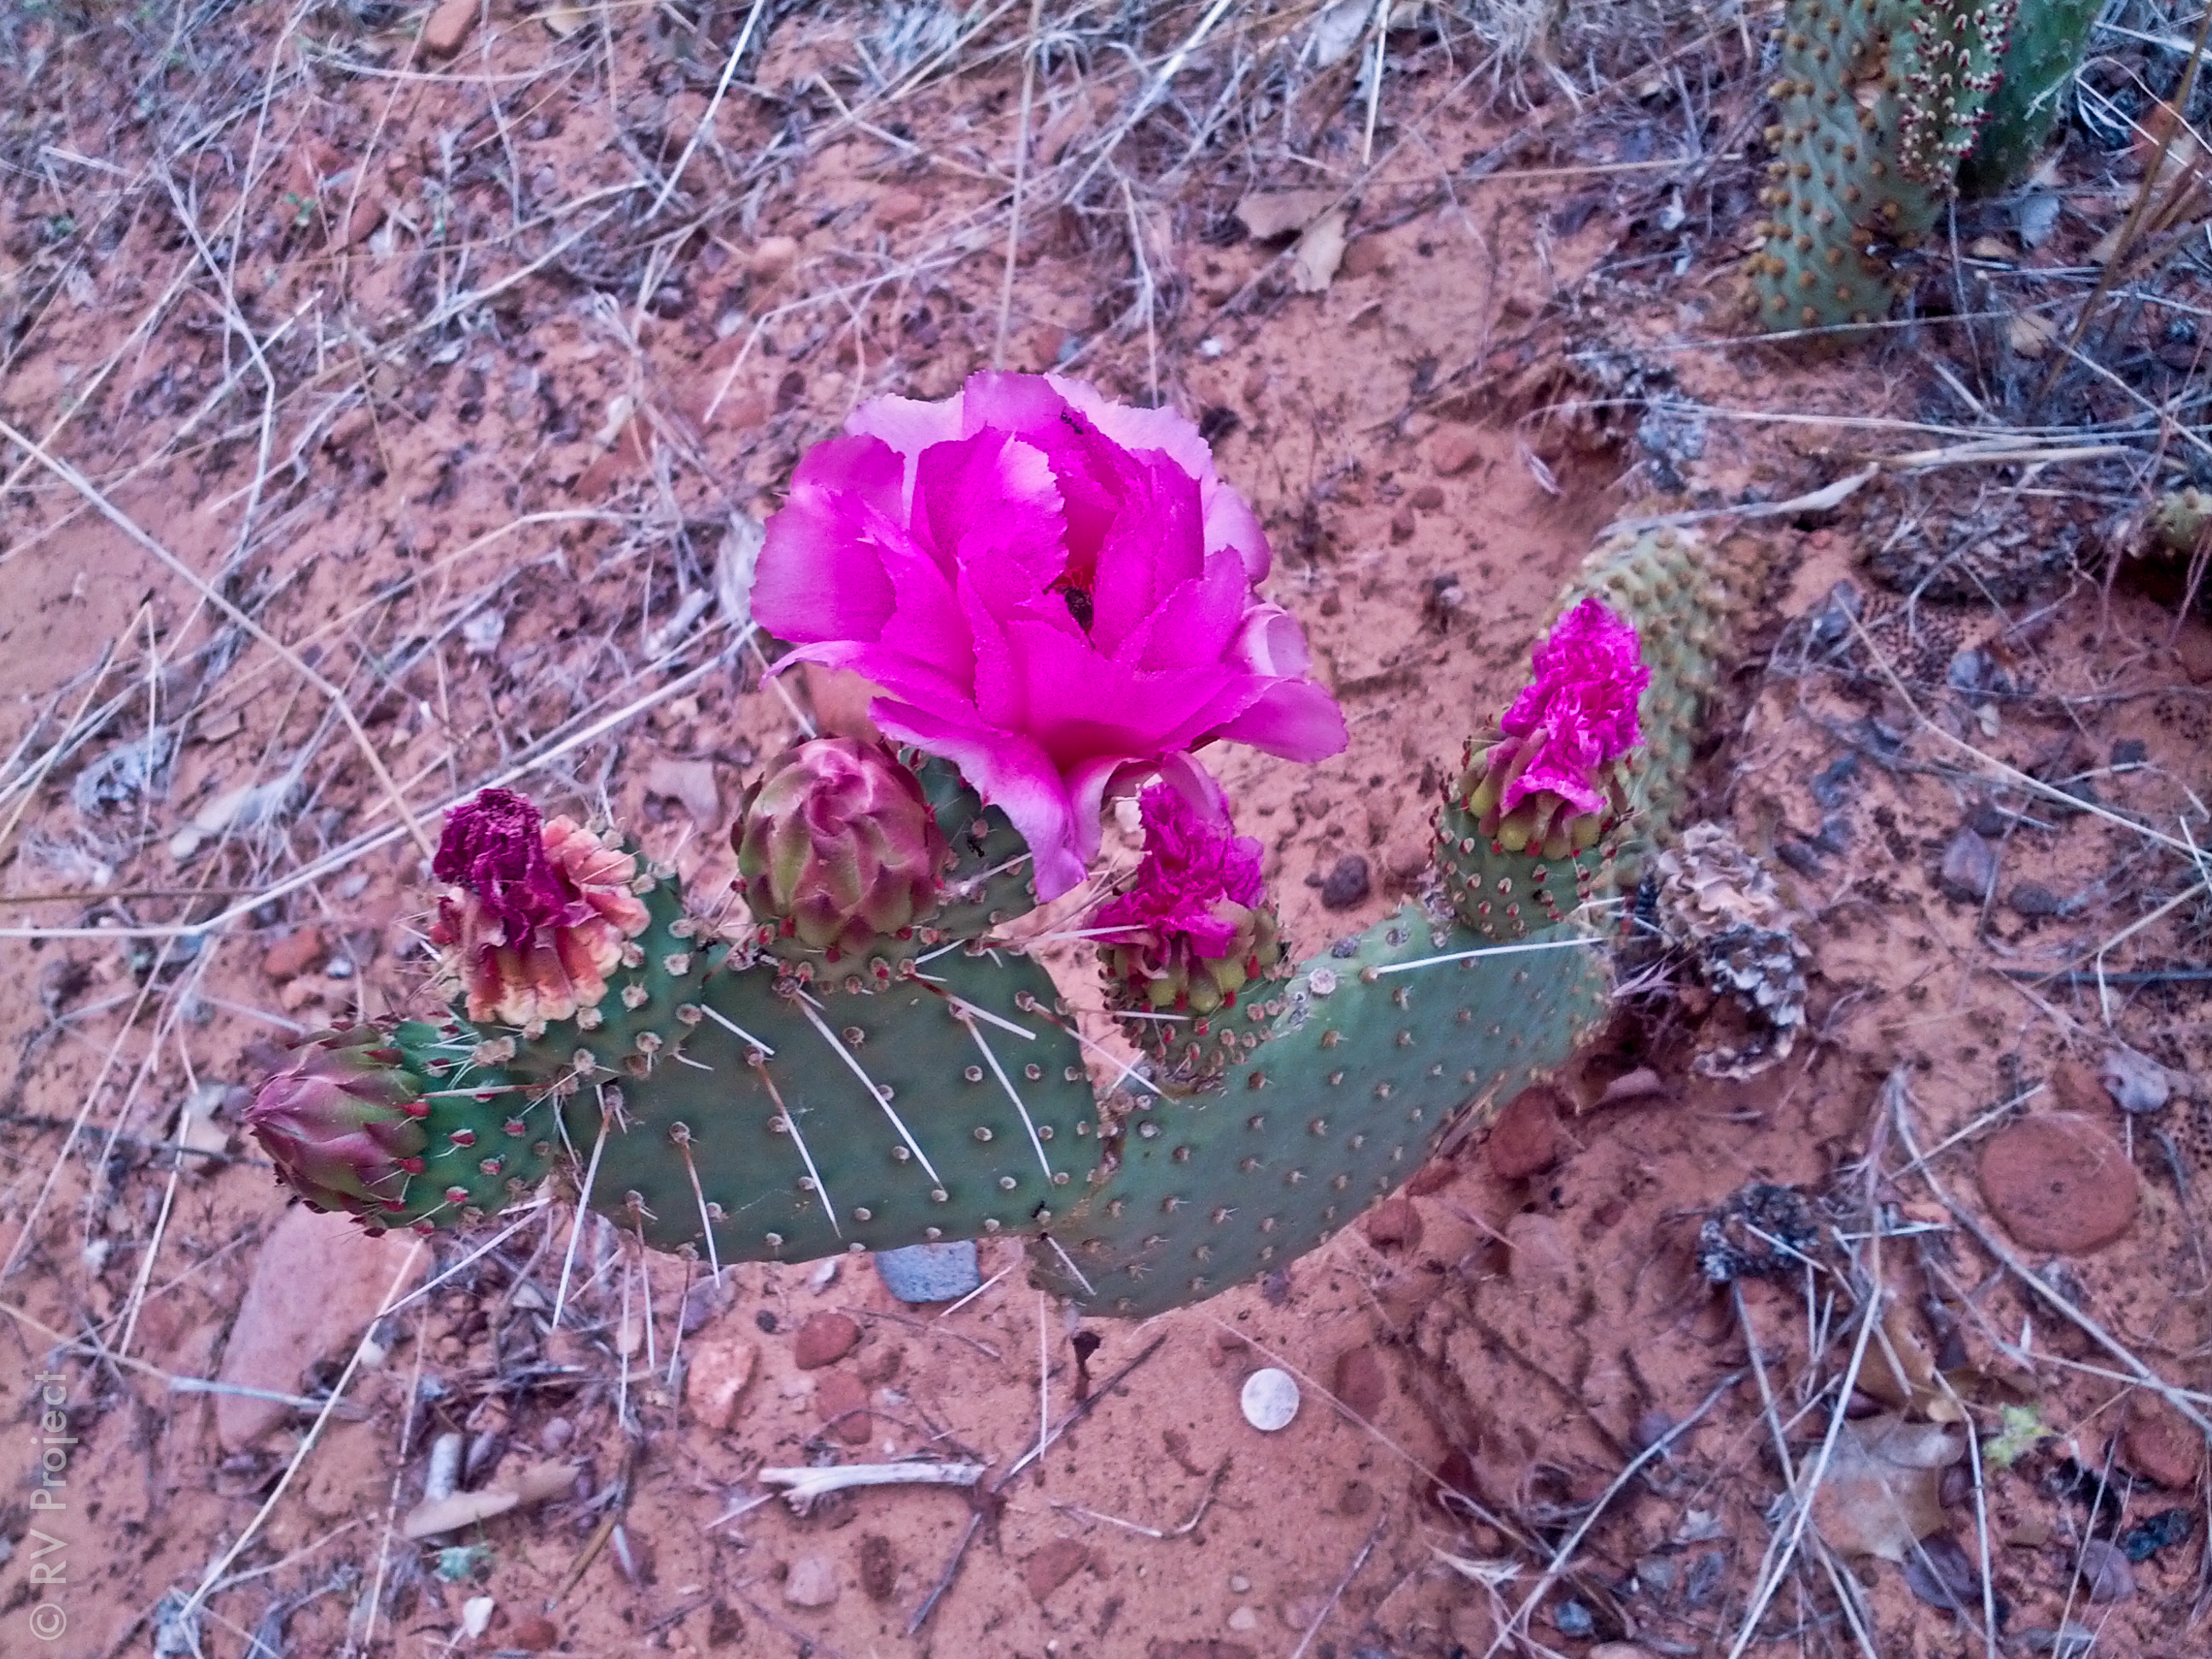 The cacti were blooming on our hike to Angel's Landing at Zion.